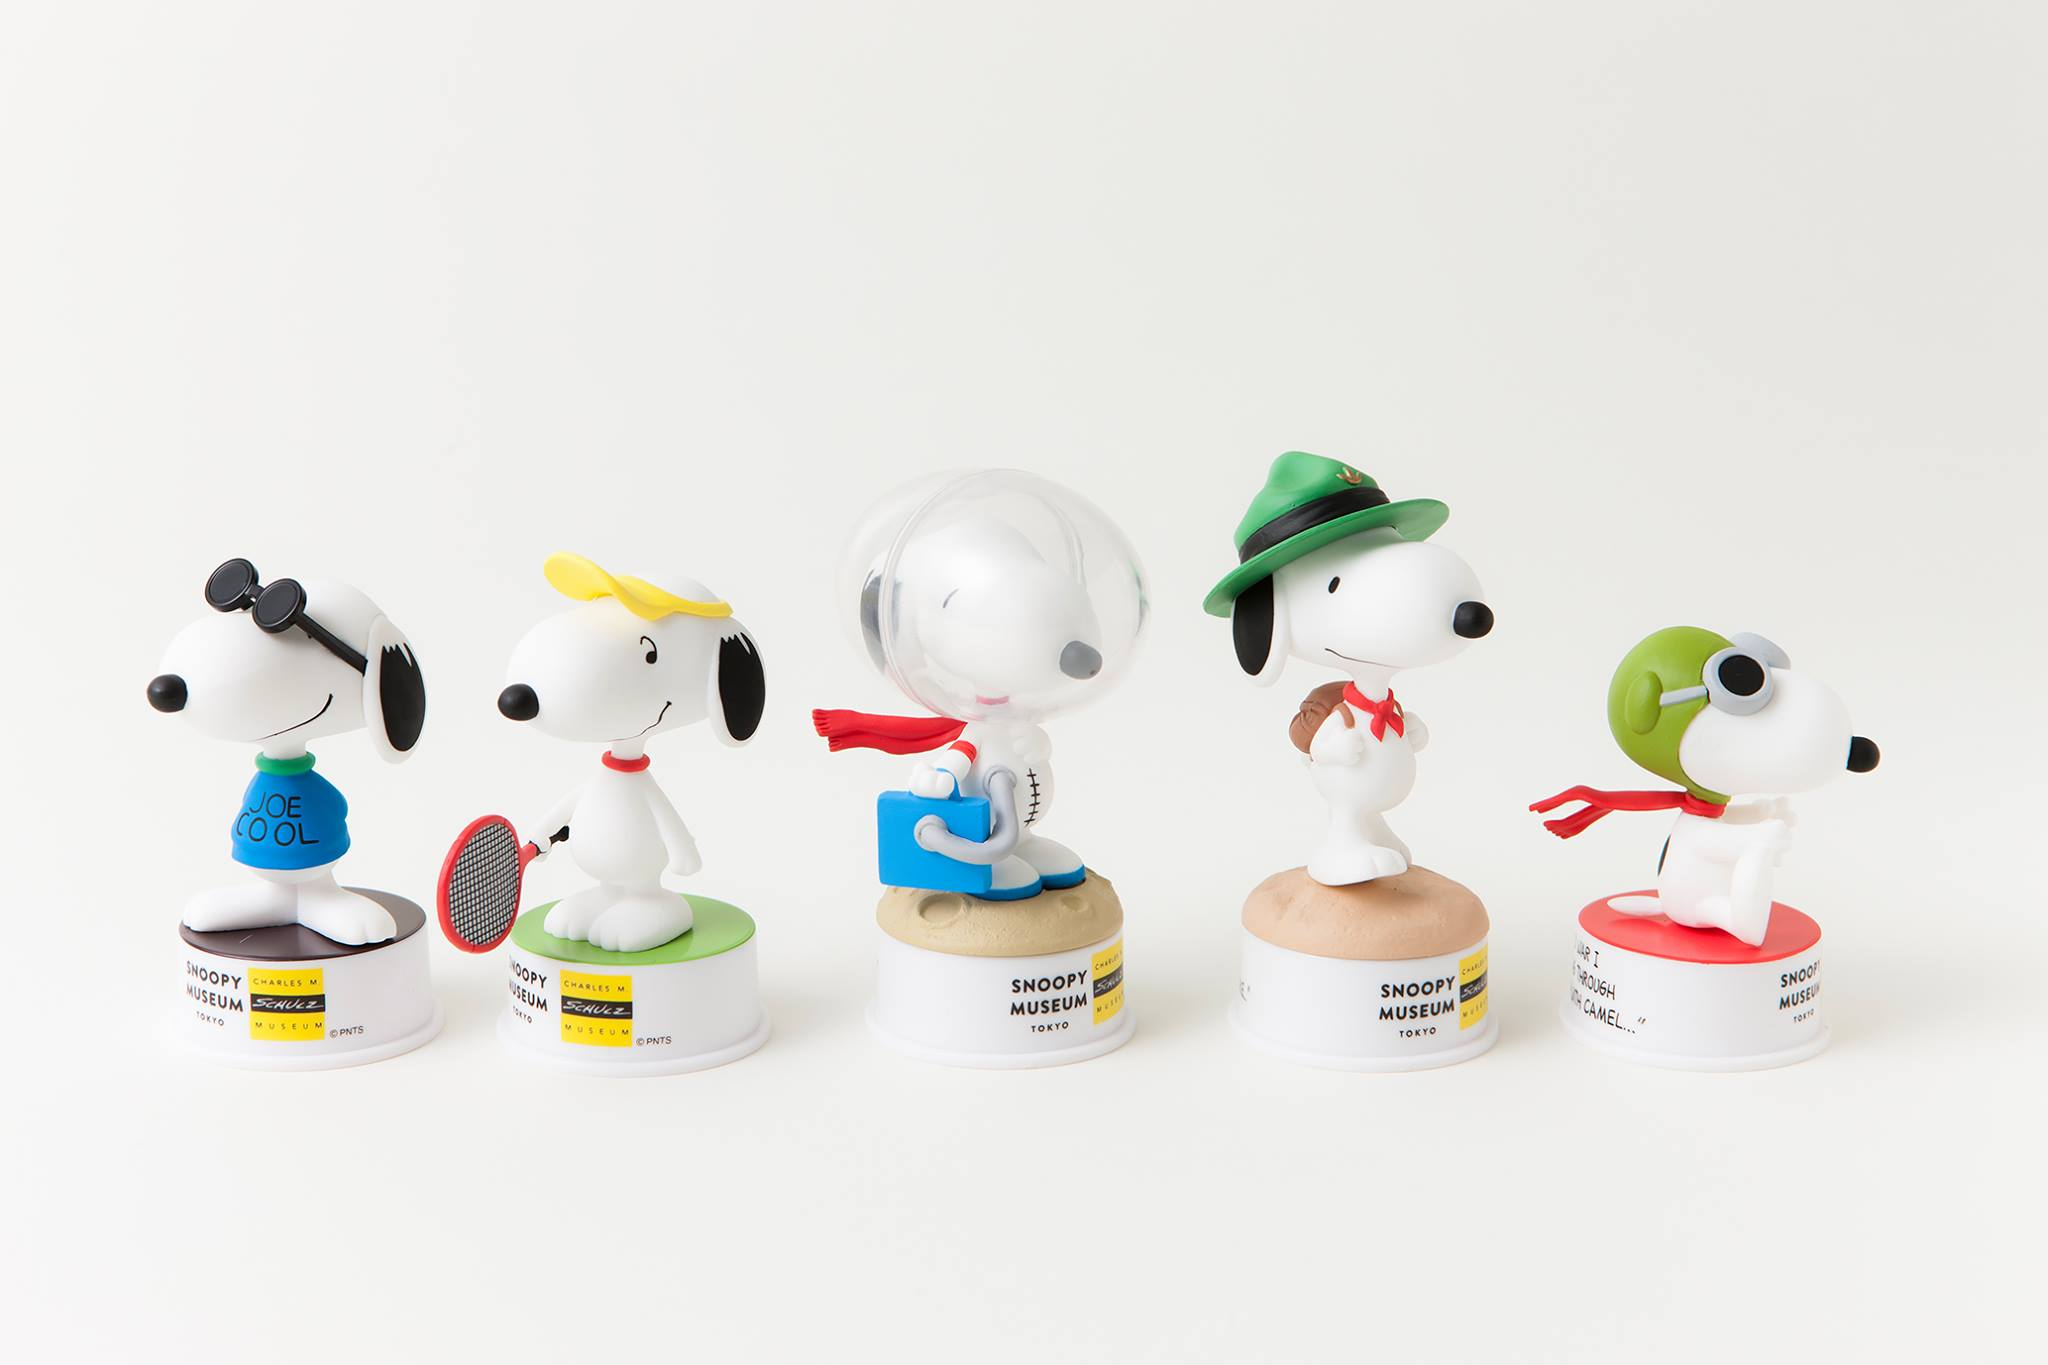 snoopy museum brown store 02